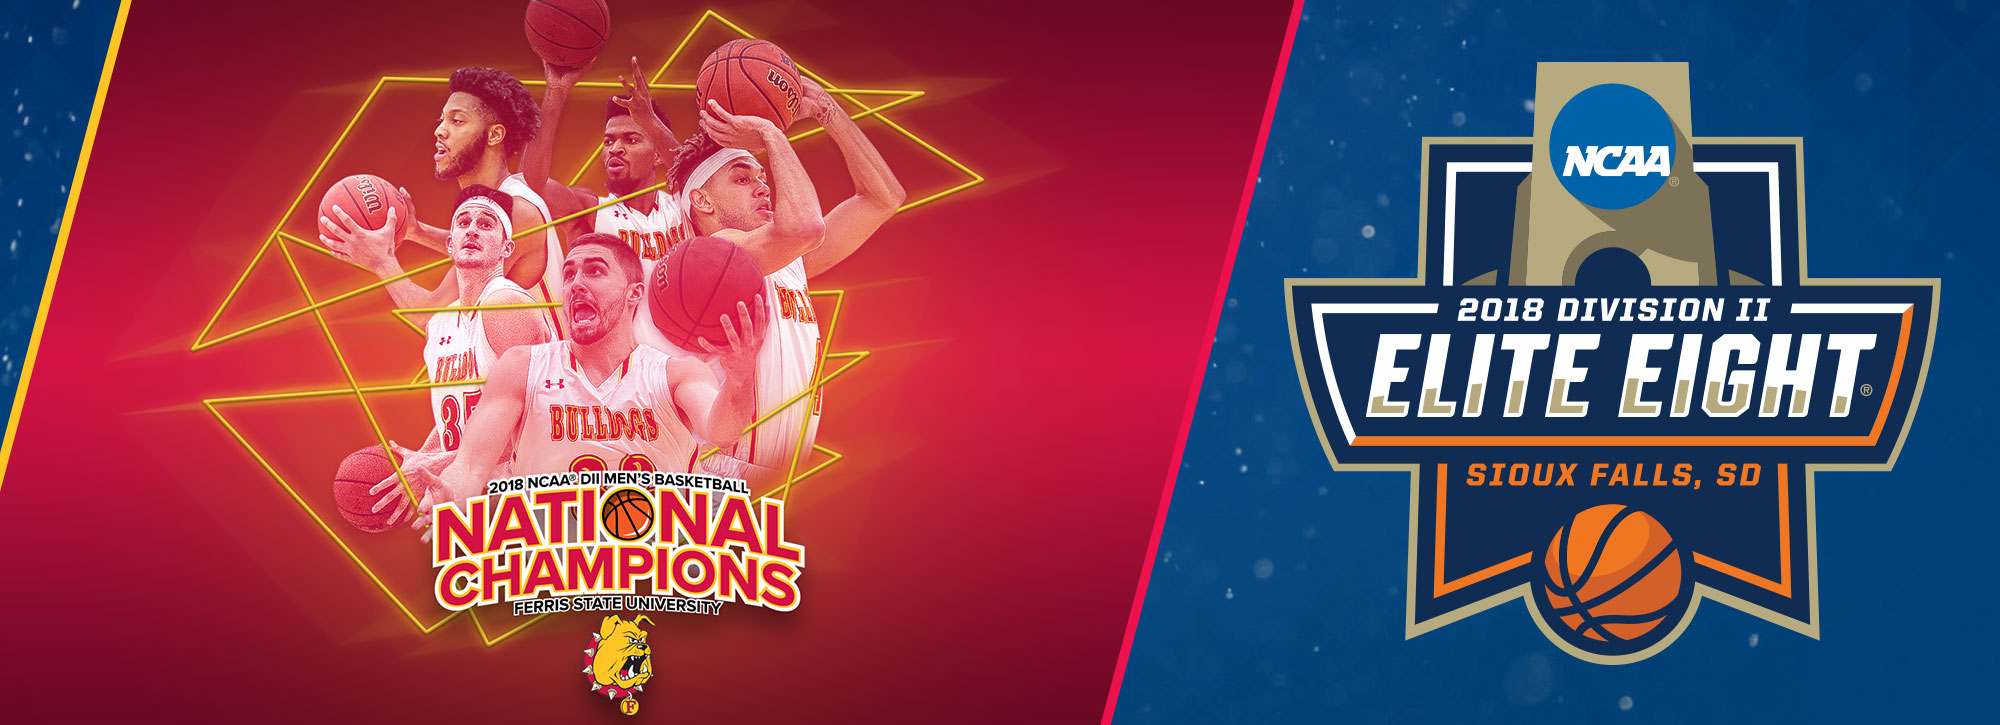 Ferris State Captures 2018 NCAA Division II Men's Basketball National Championship!